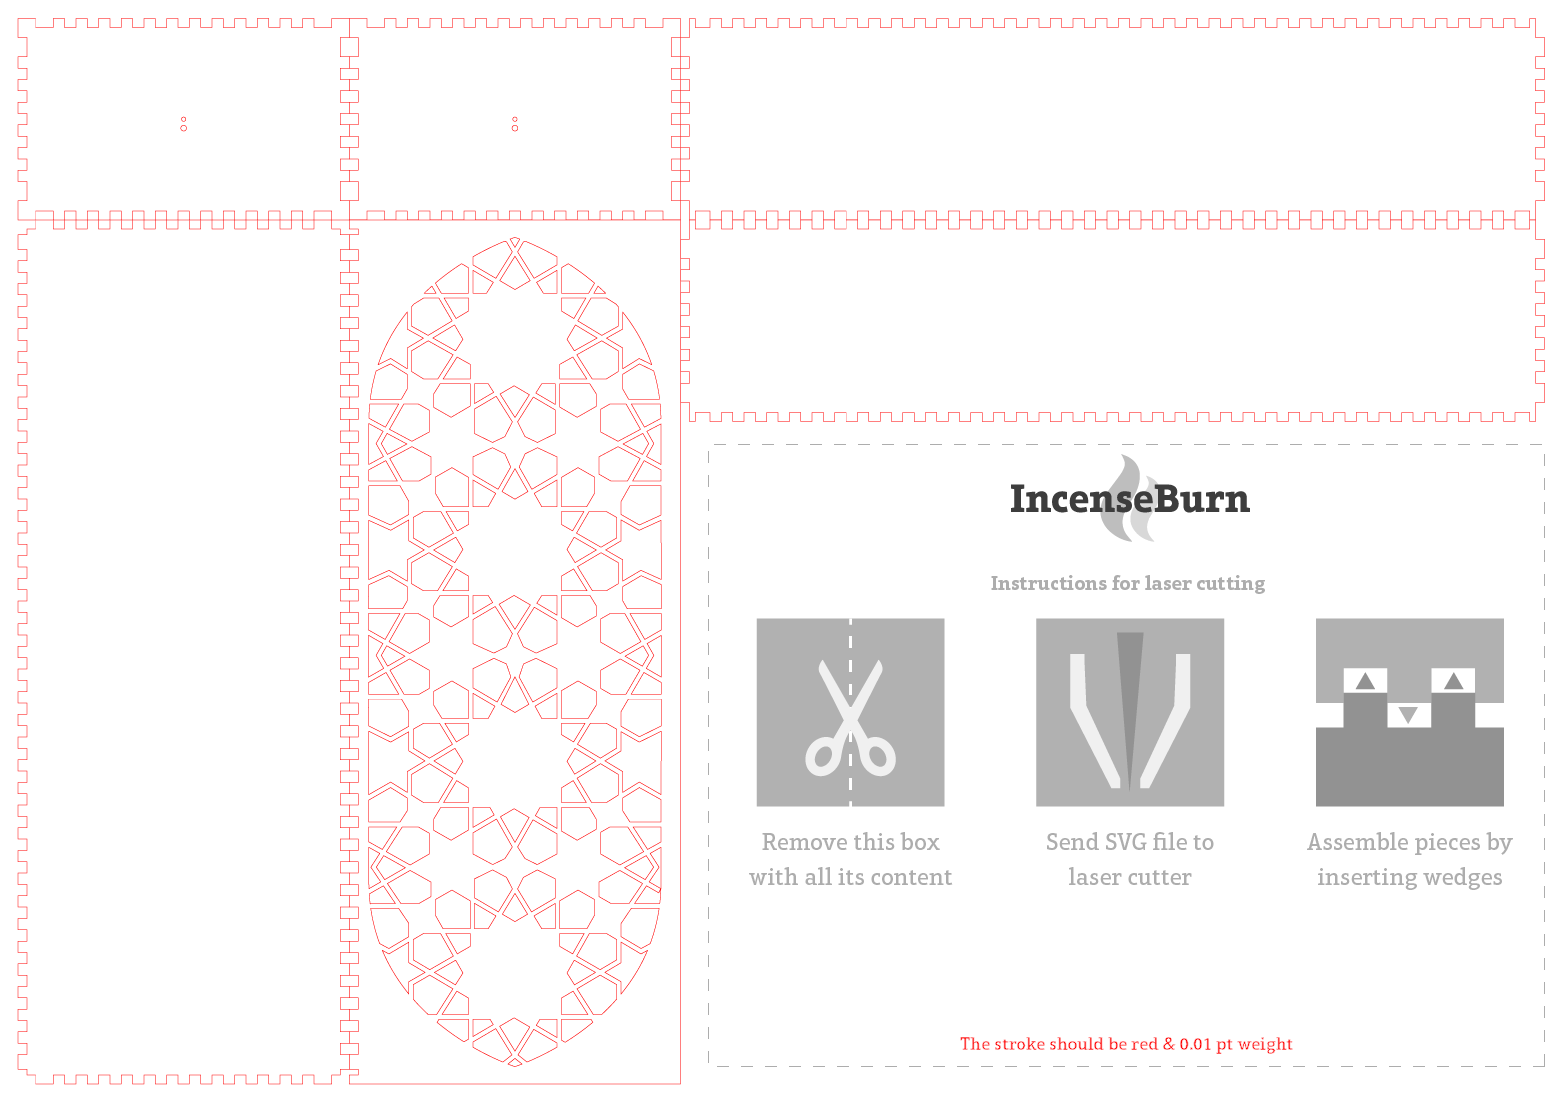 This will be the downloadable file which the user will be able to modify & send to the laser cut machine